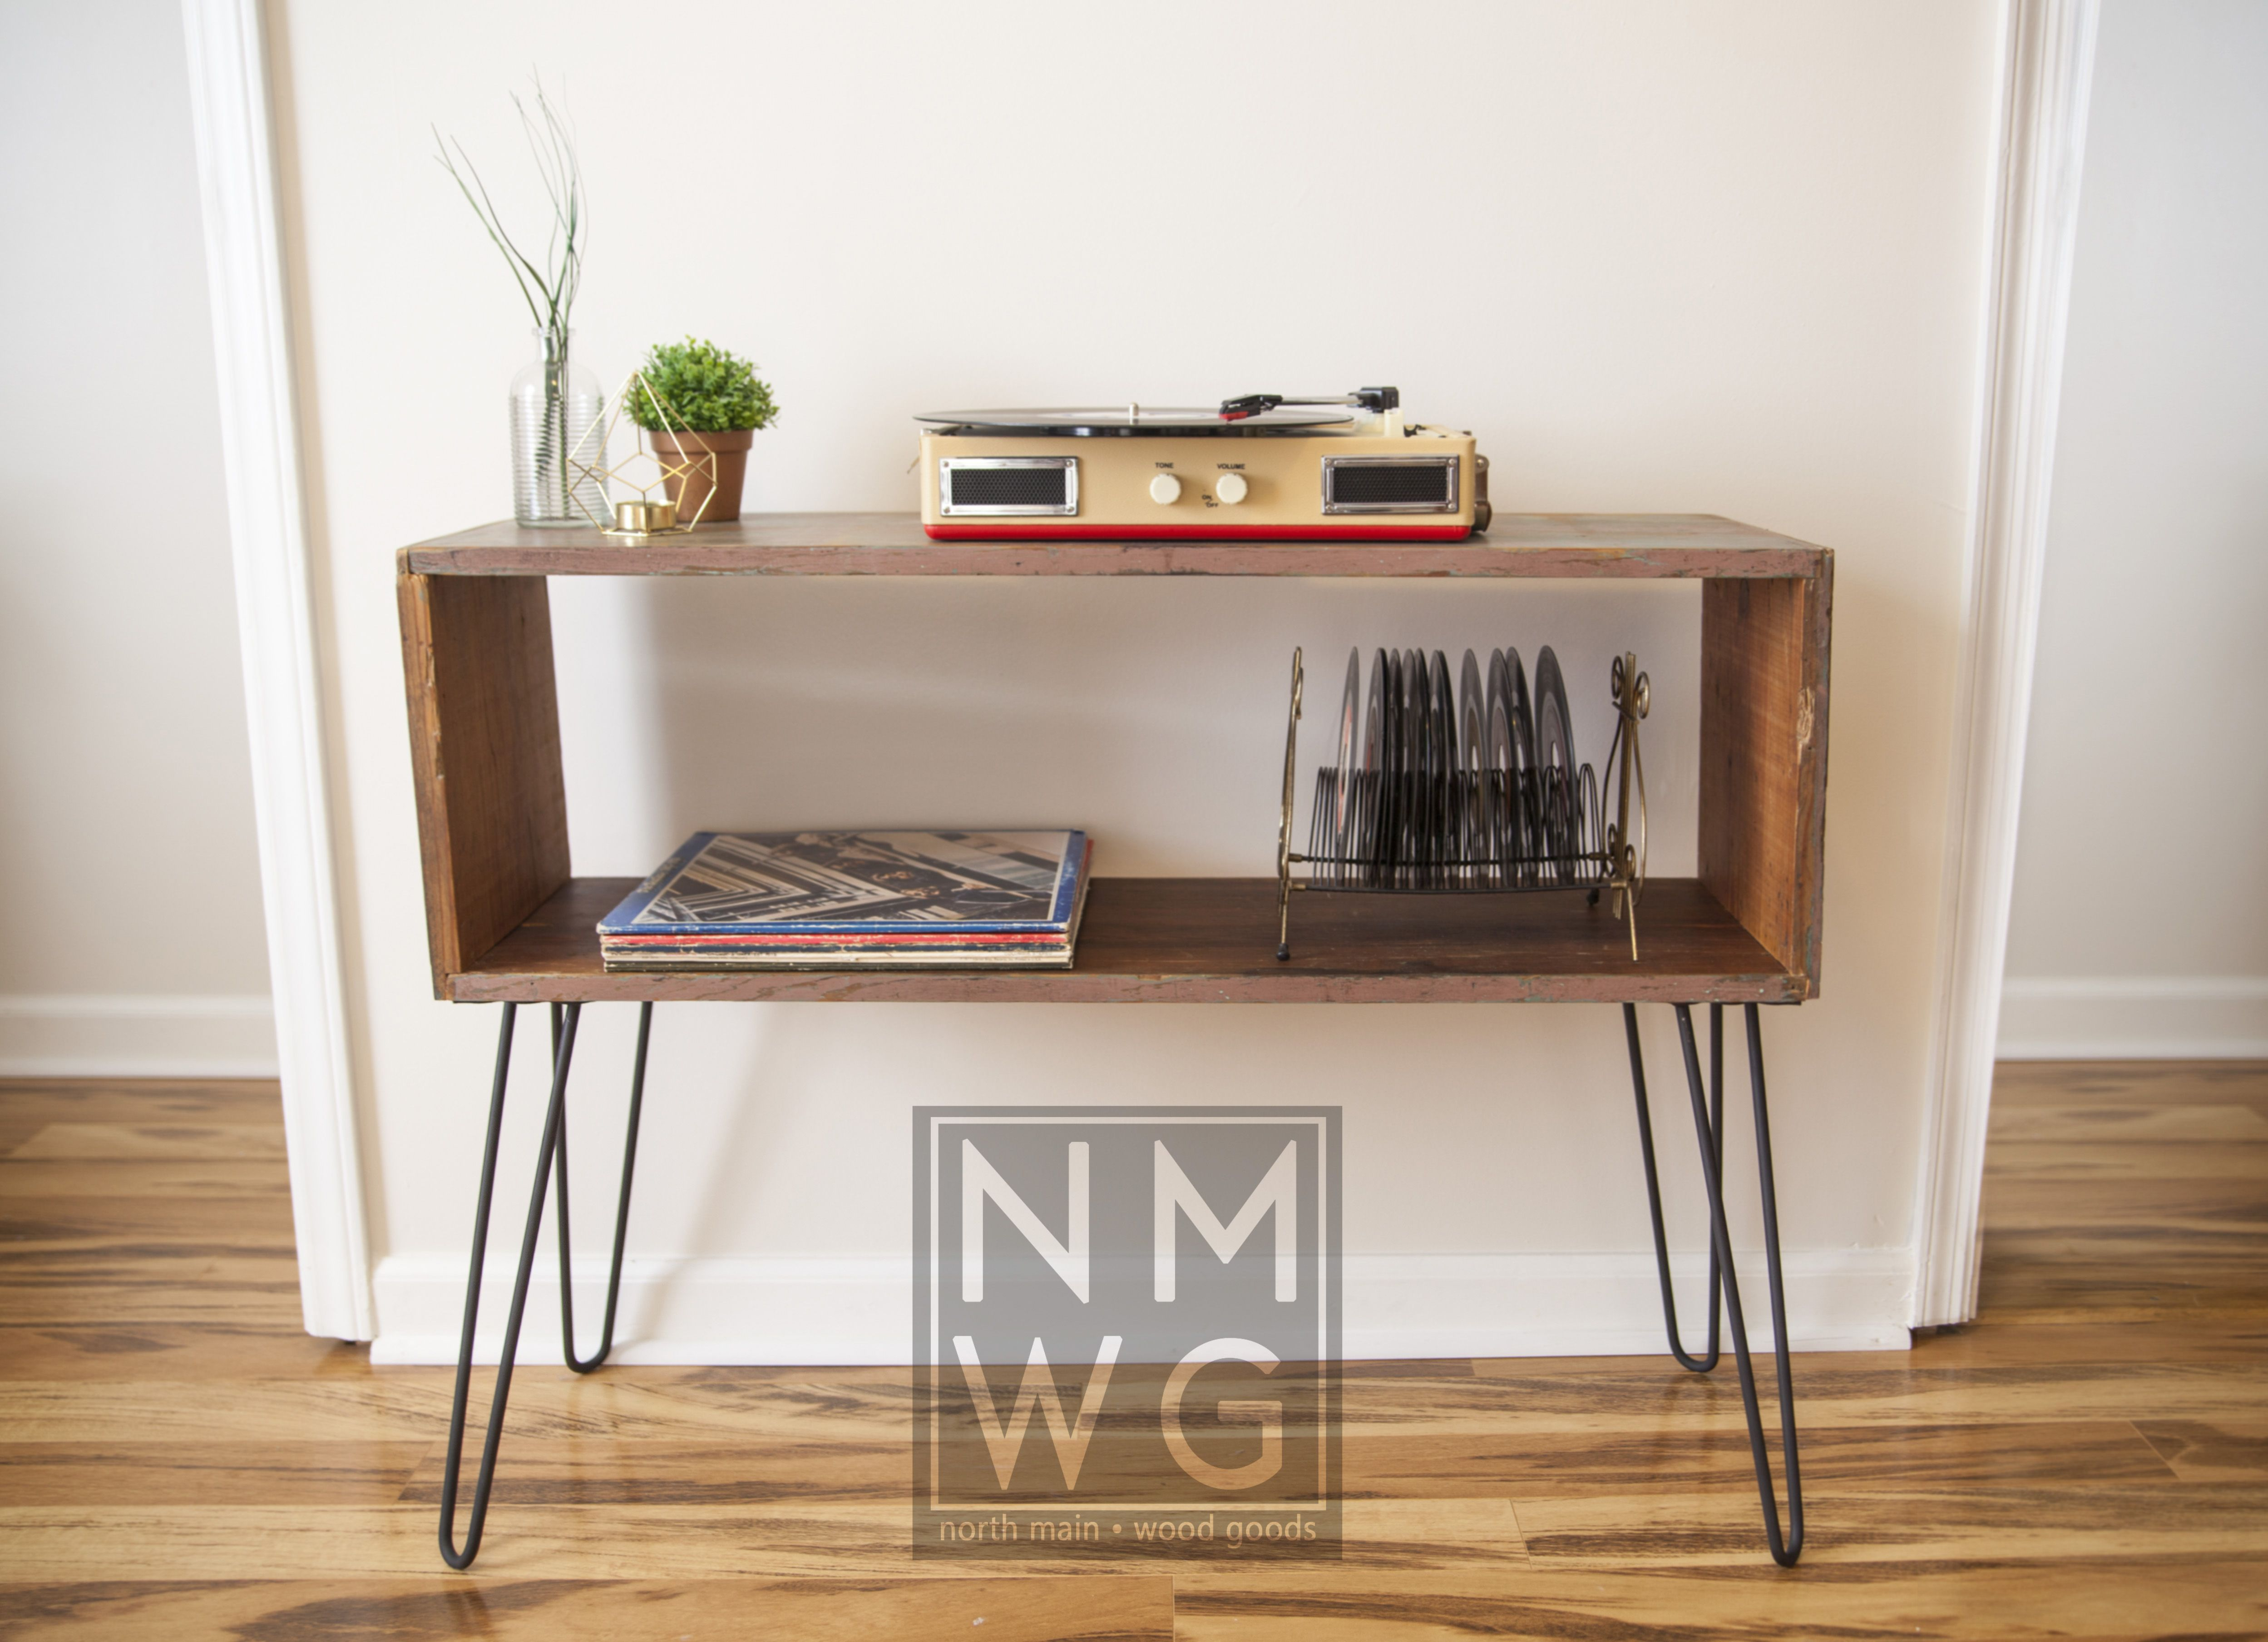 Console Table With Hairpin Legs. Perfect For Record Players And Storing  Records!